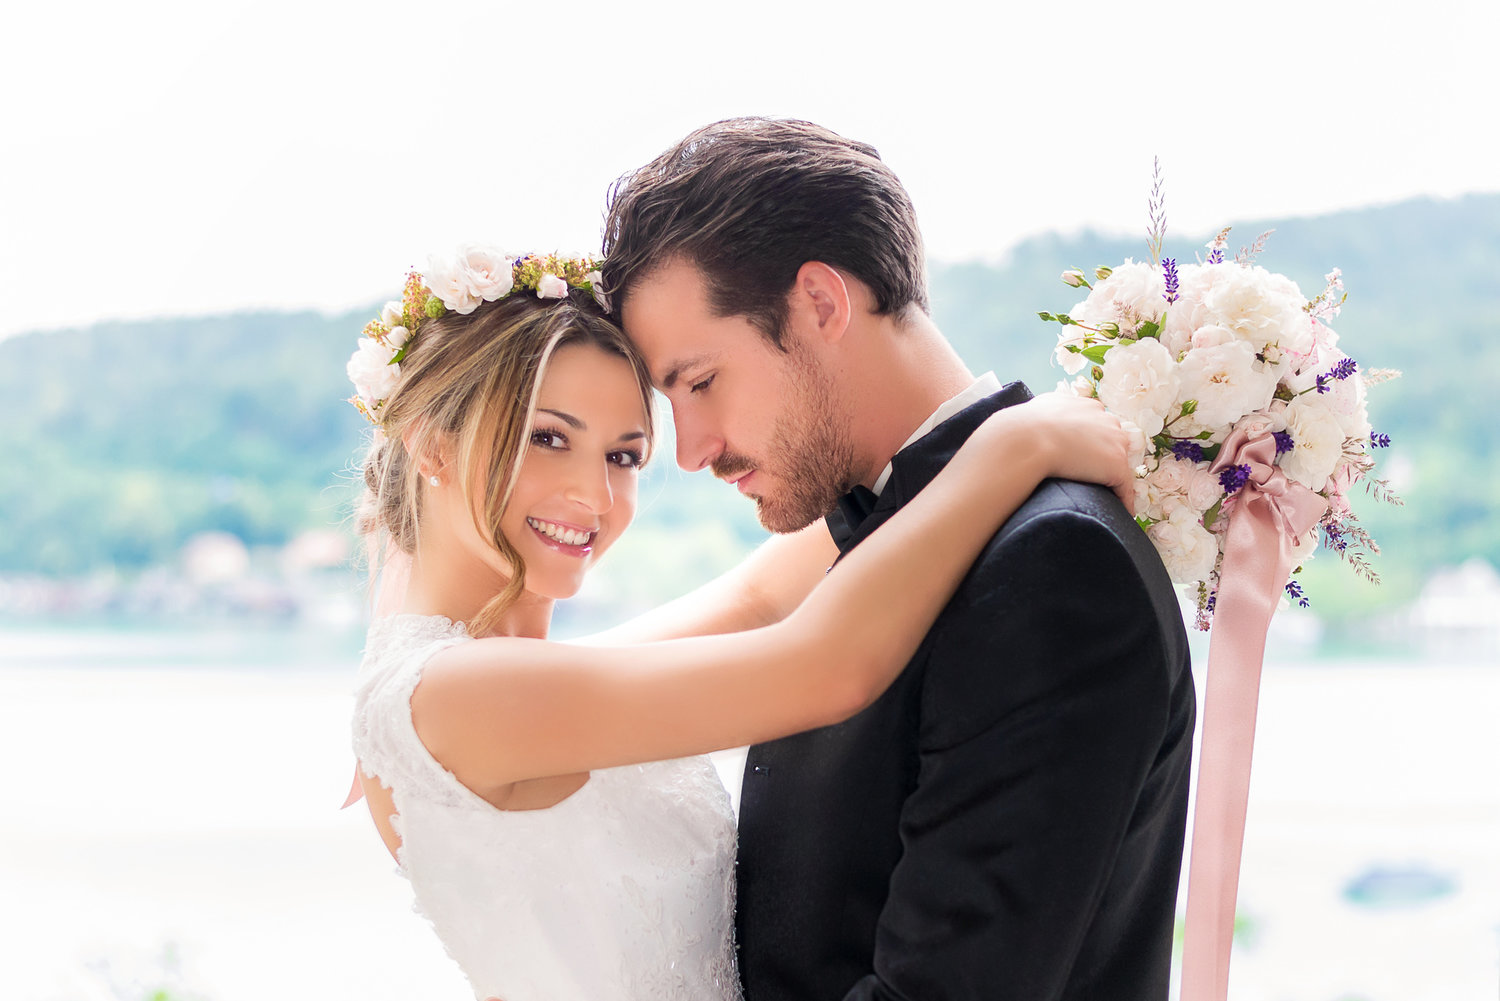 Atlanta Wedding Planner and Floral Designer - 20 Fun and Unique Wedding Photo Ideas to Make Your Day Truly Memorable